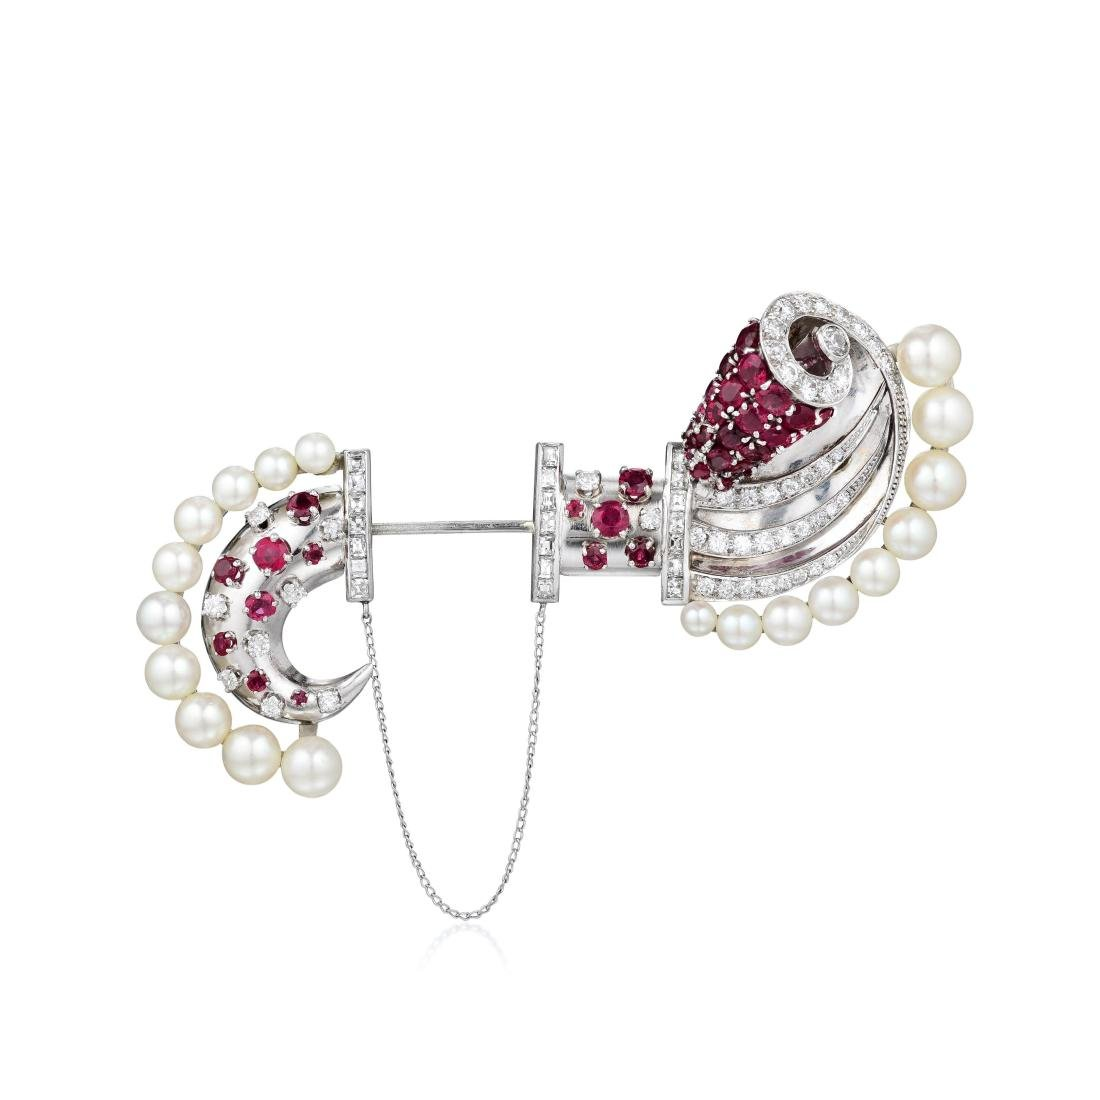 A Platinum and White Gold Ruby, Diamond and Cultured